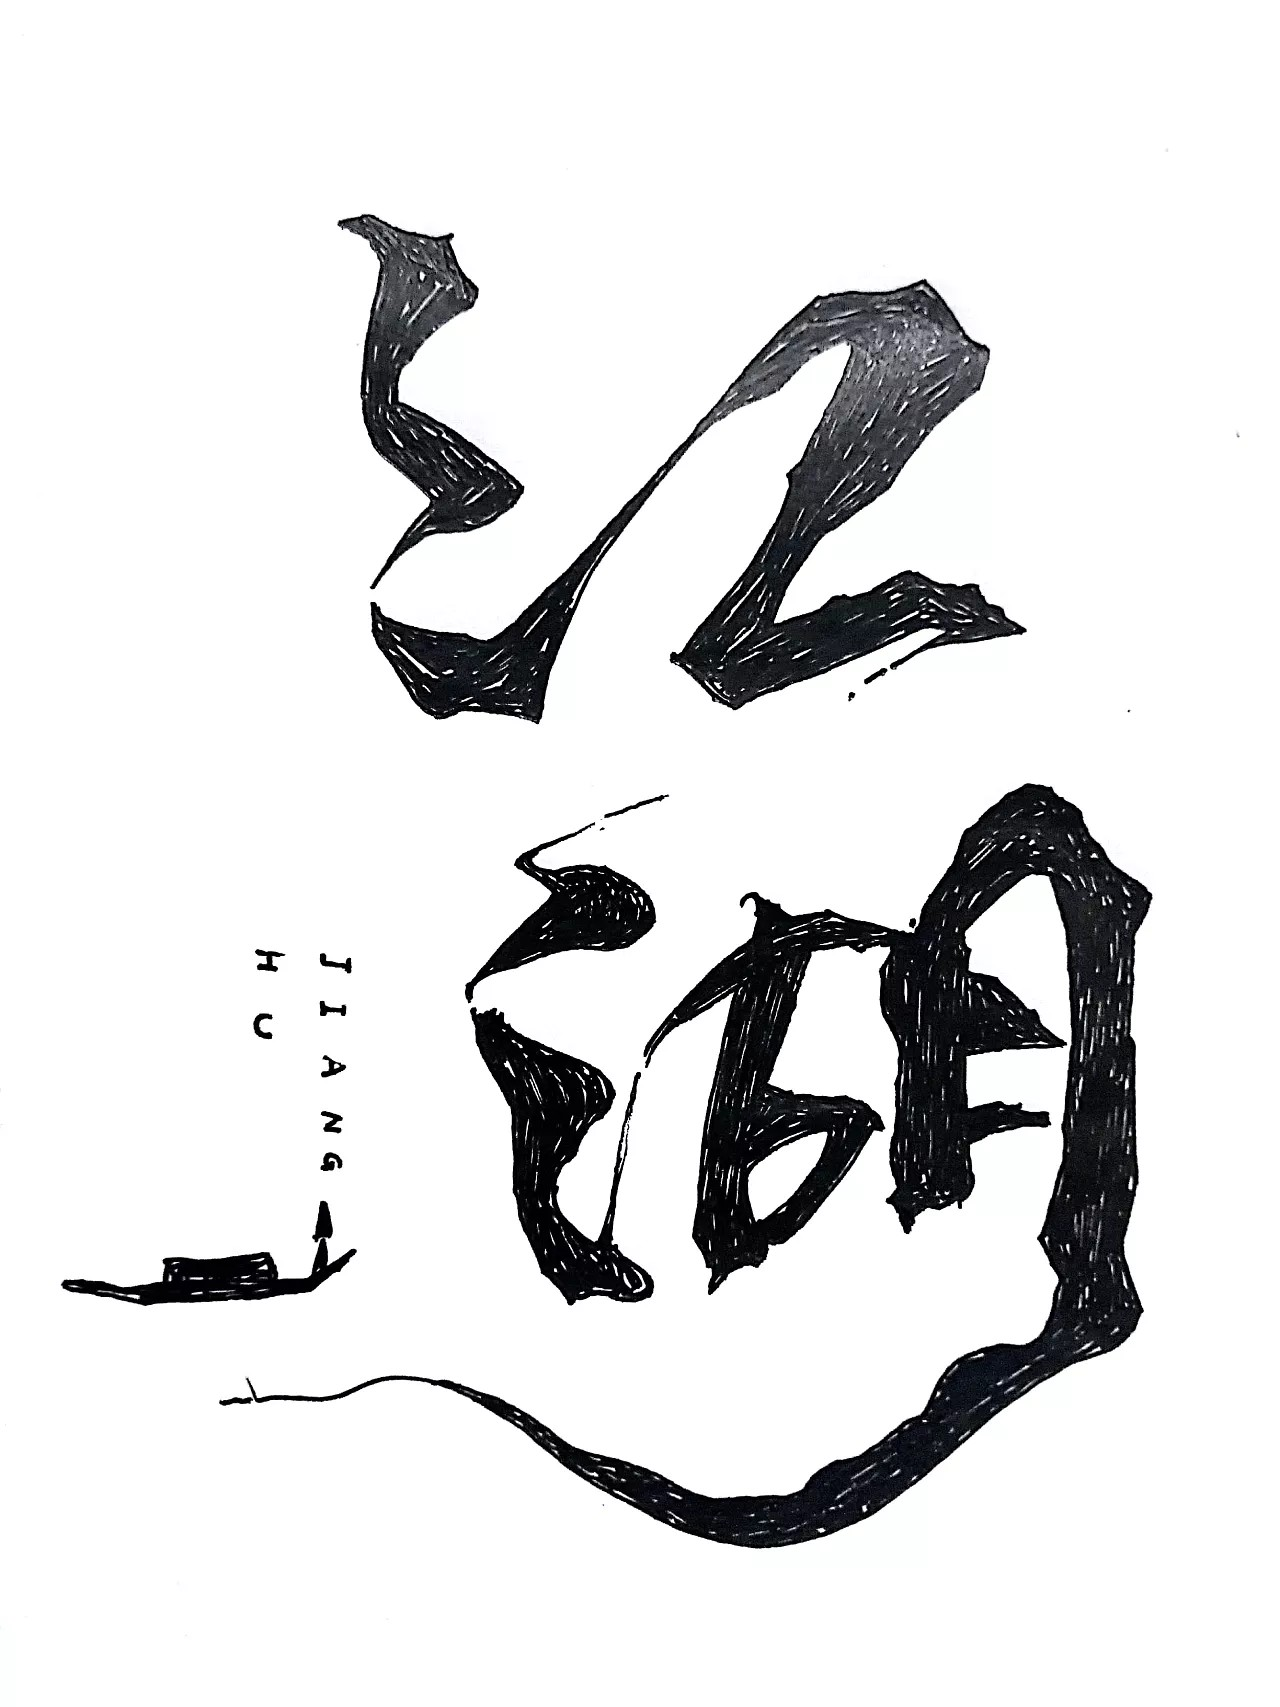 chinesefontdesign.com 2018 04 04 07 28 12 616256 18P Wonderful handwritten art chinese font design